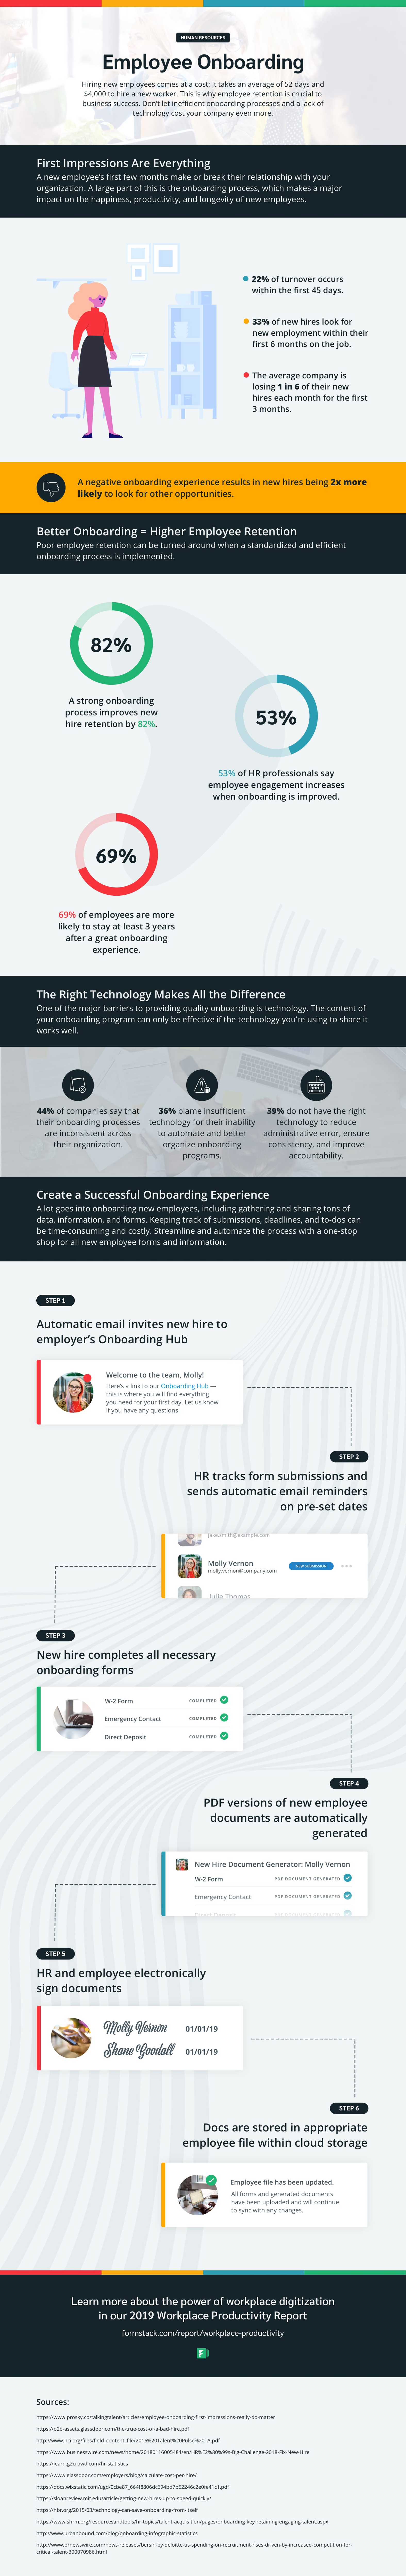 Creating a Successful Employee Onboarding Experience